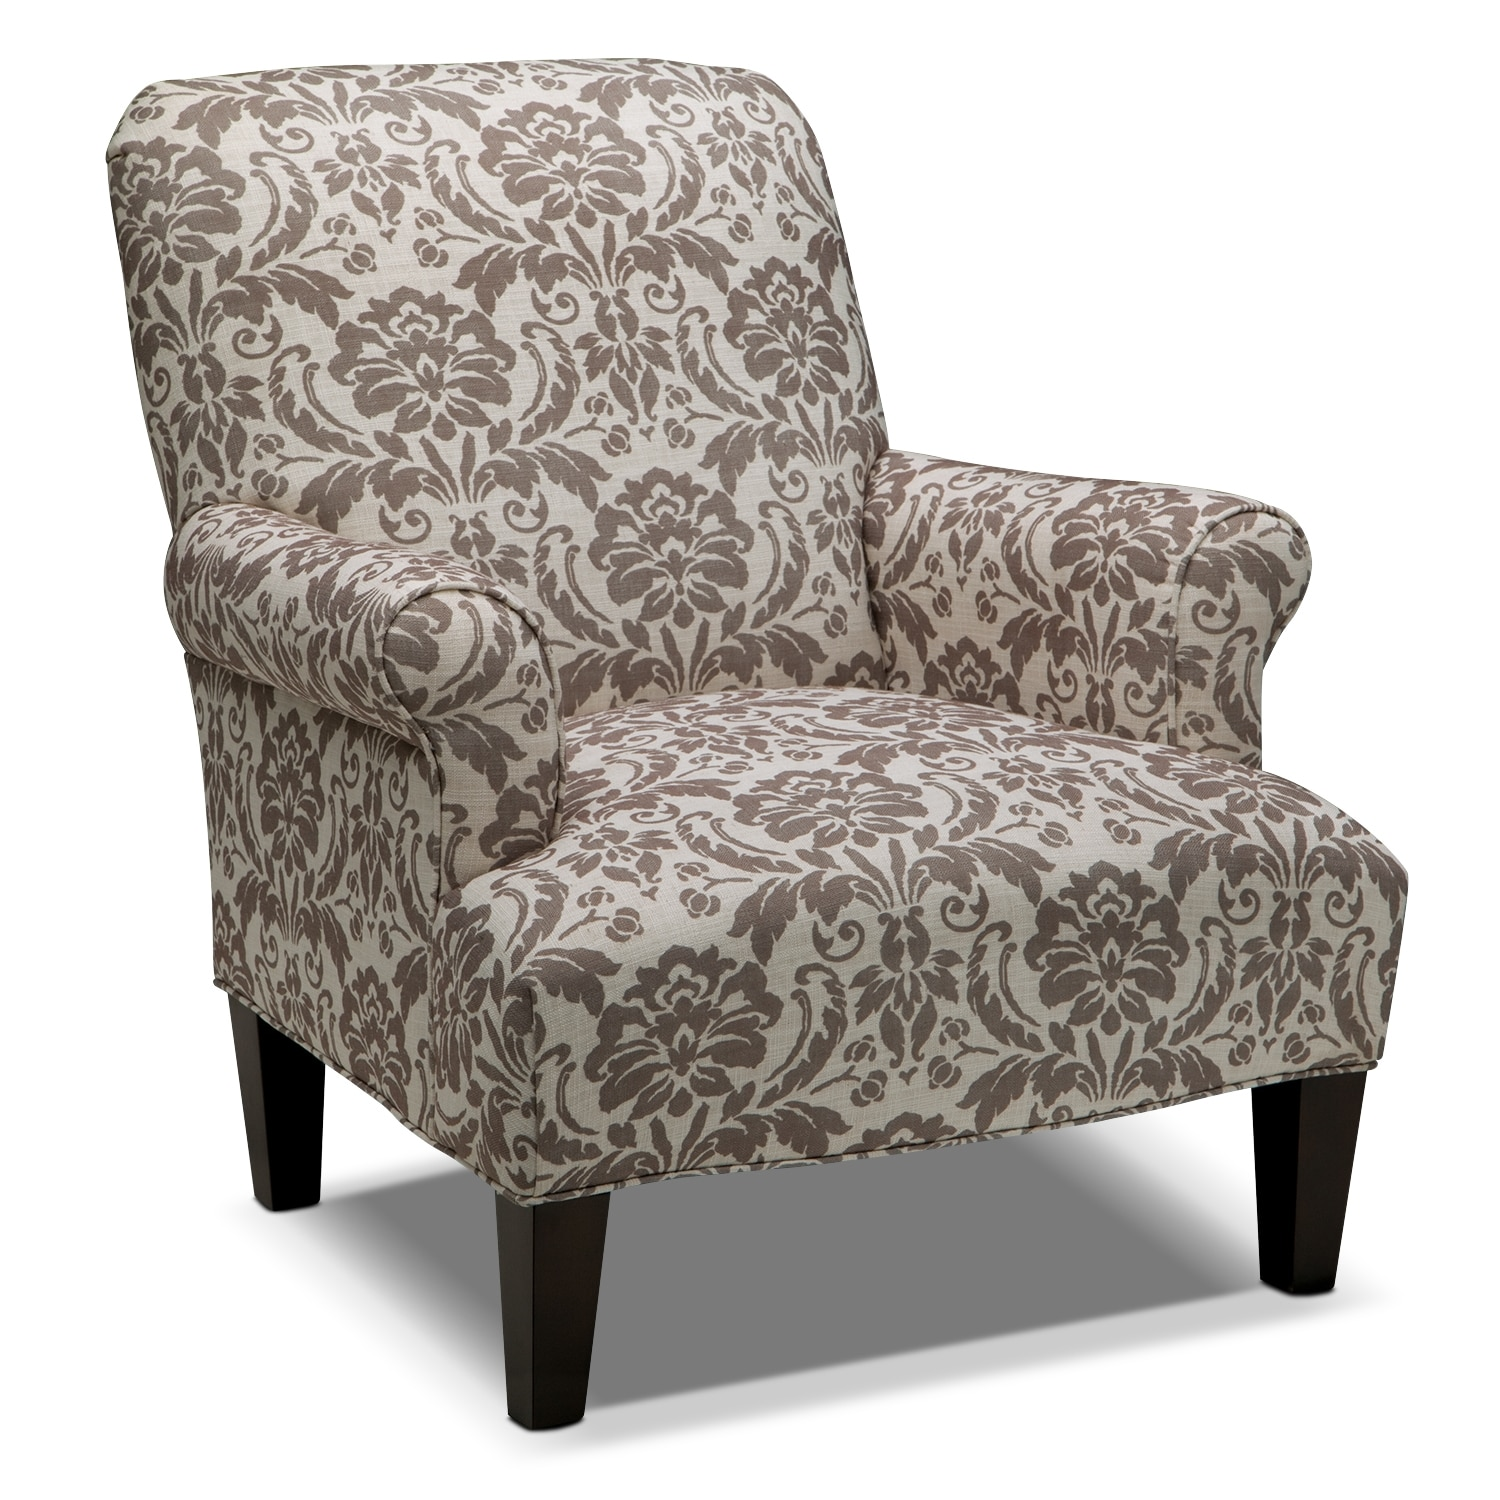 Accent Furniture For Living Room: Dandridge 2 Pc. Living Room W/ Accent Chair